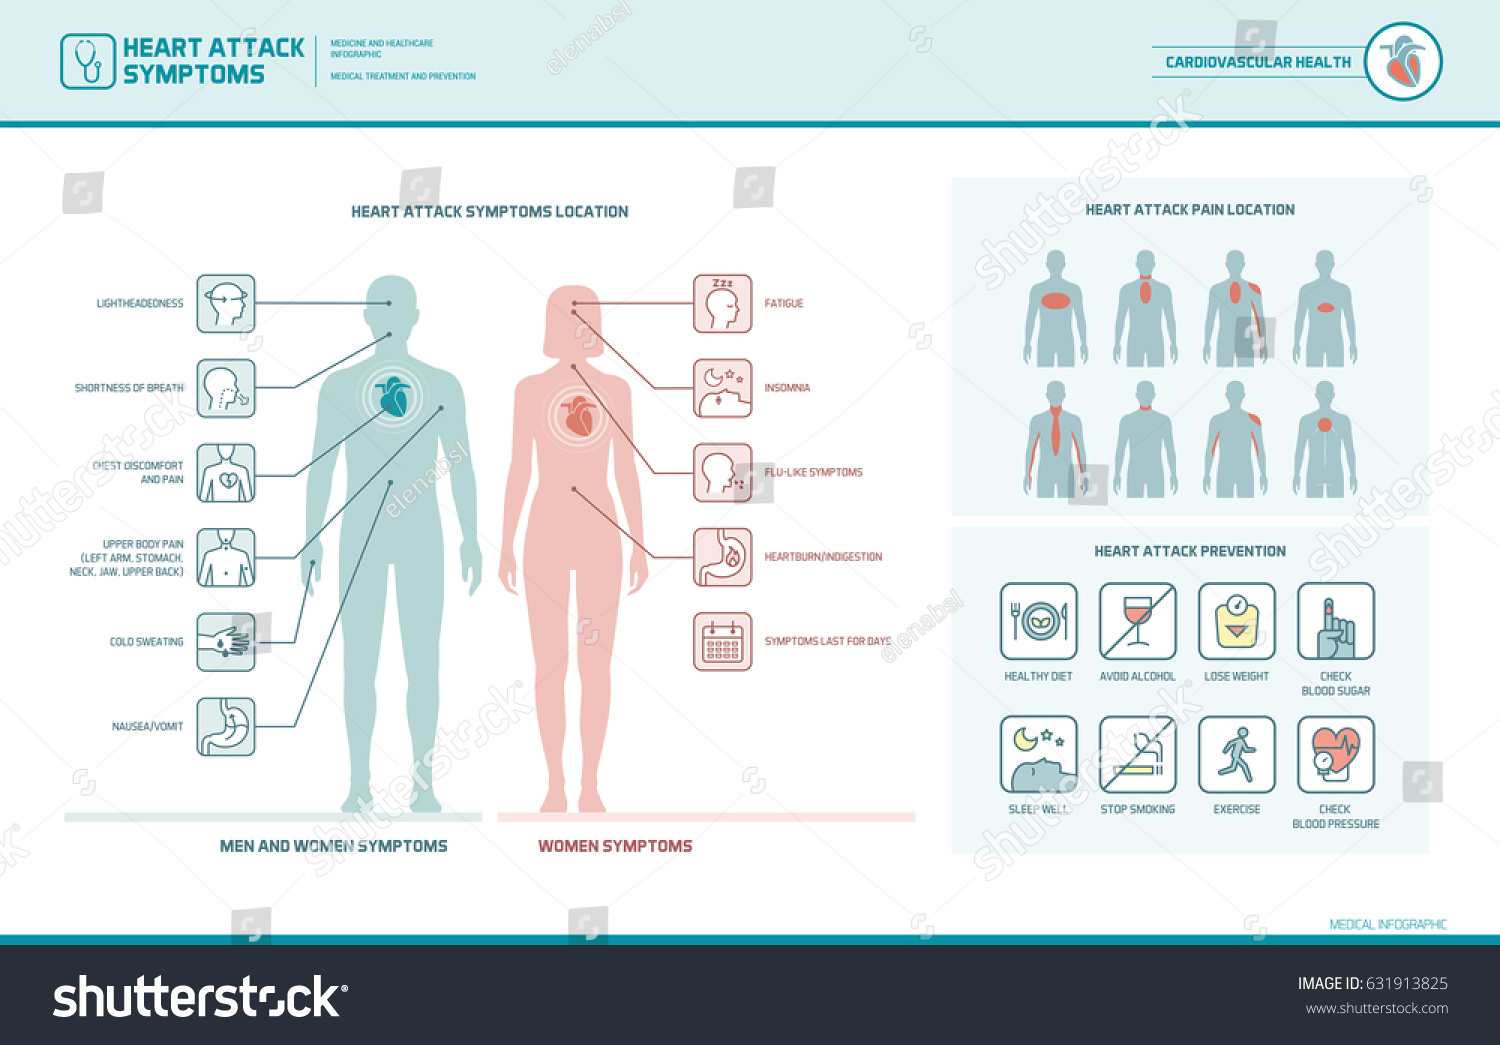 Heart attack symptoms on men women em vetor stock 631913825 heart attack symptoms on men and women infographic pain location and prevention tips ccuart Image collections